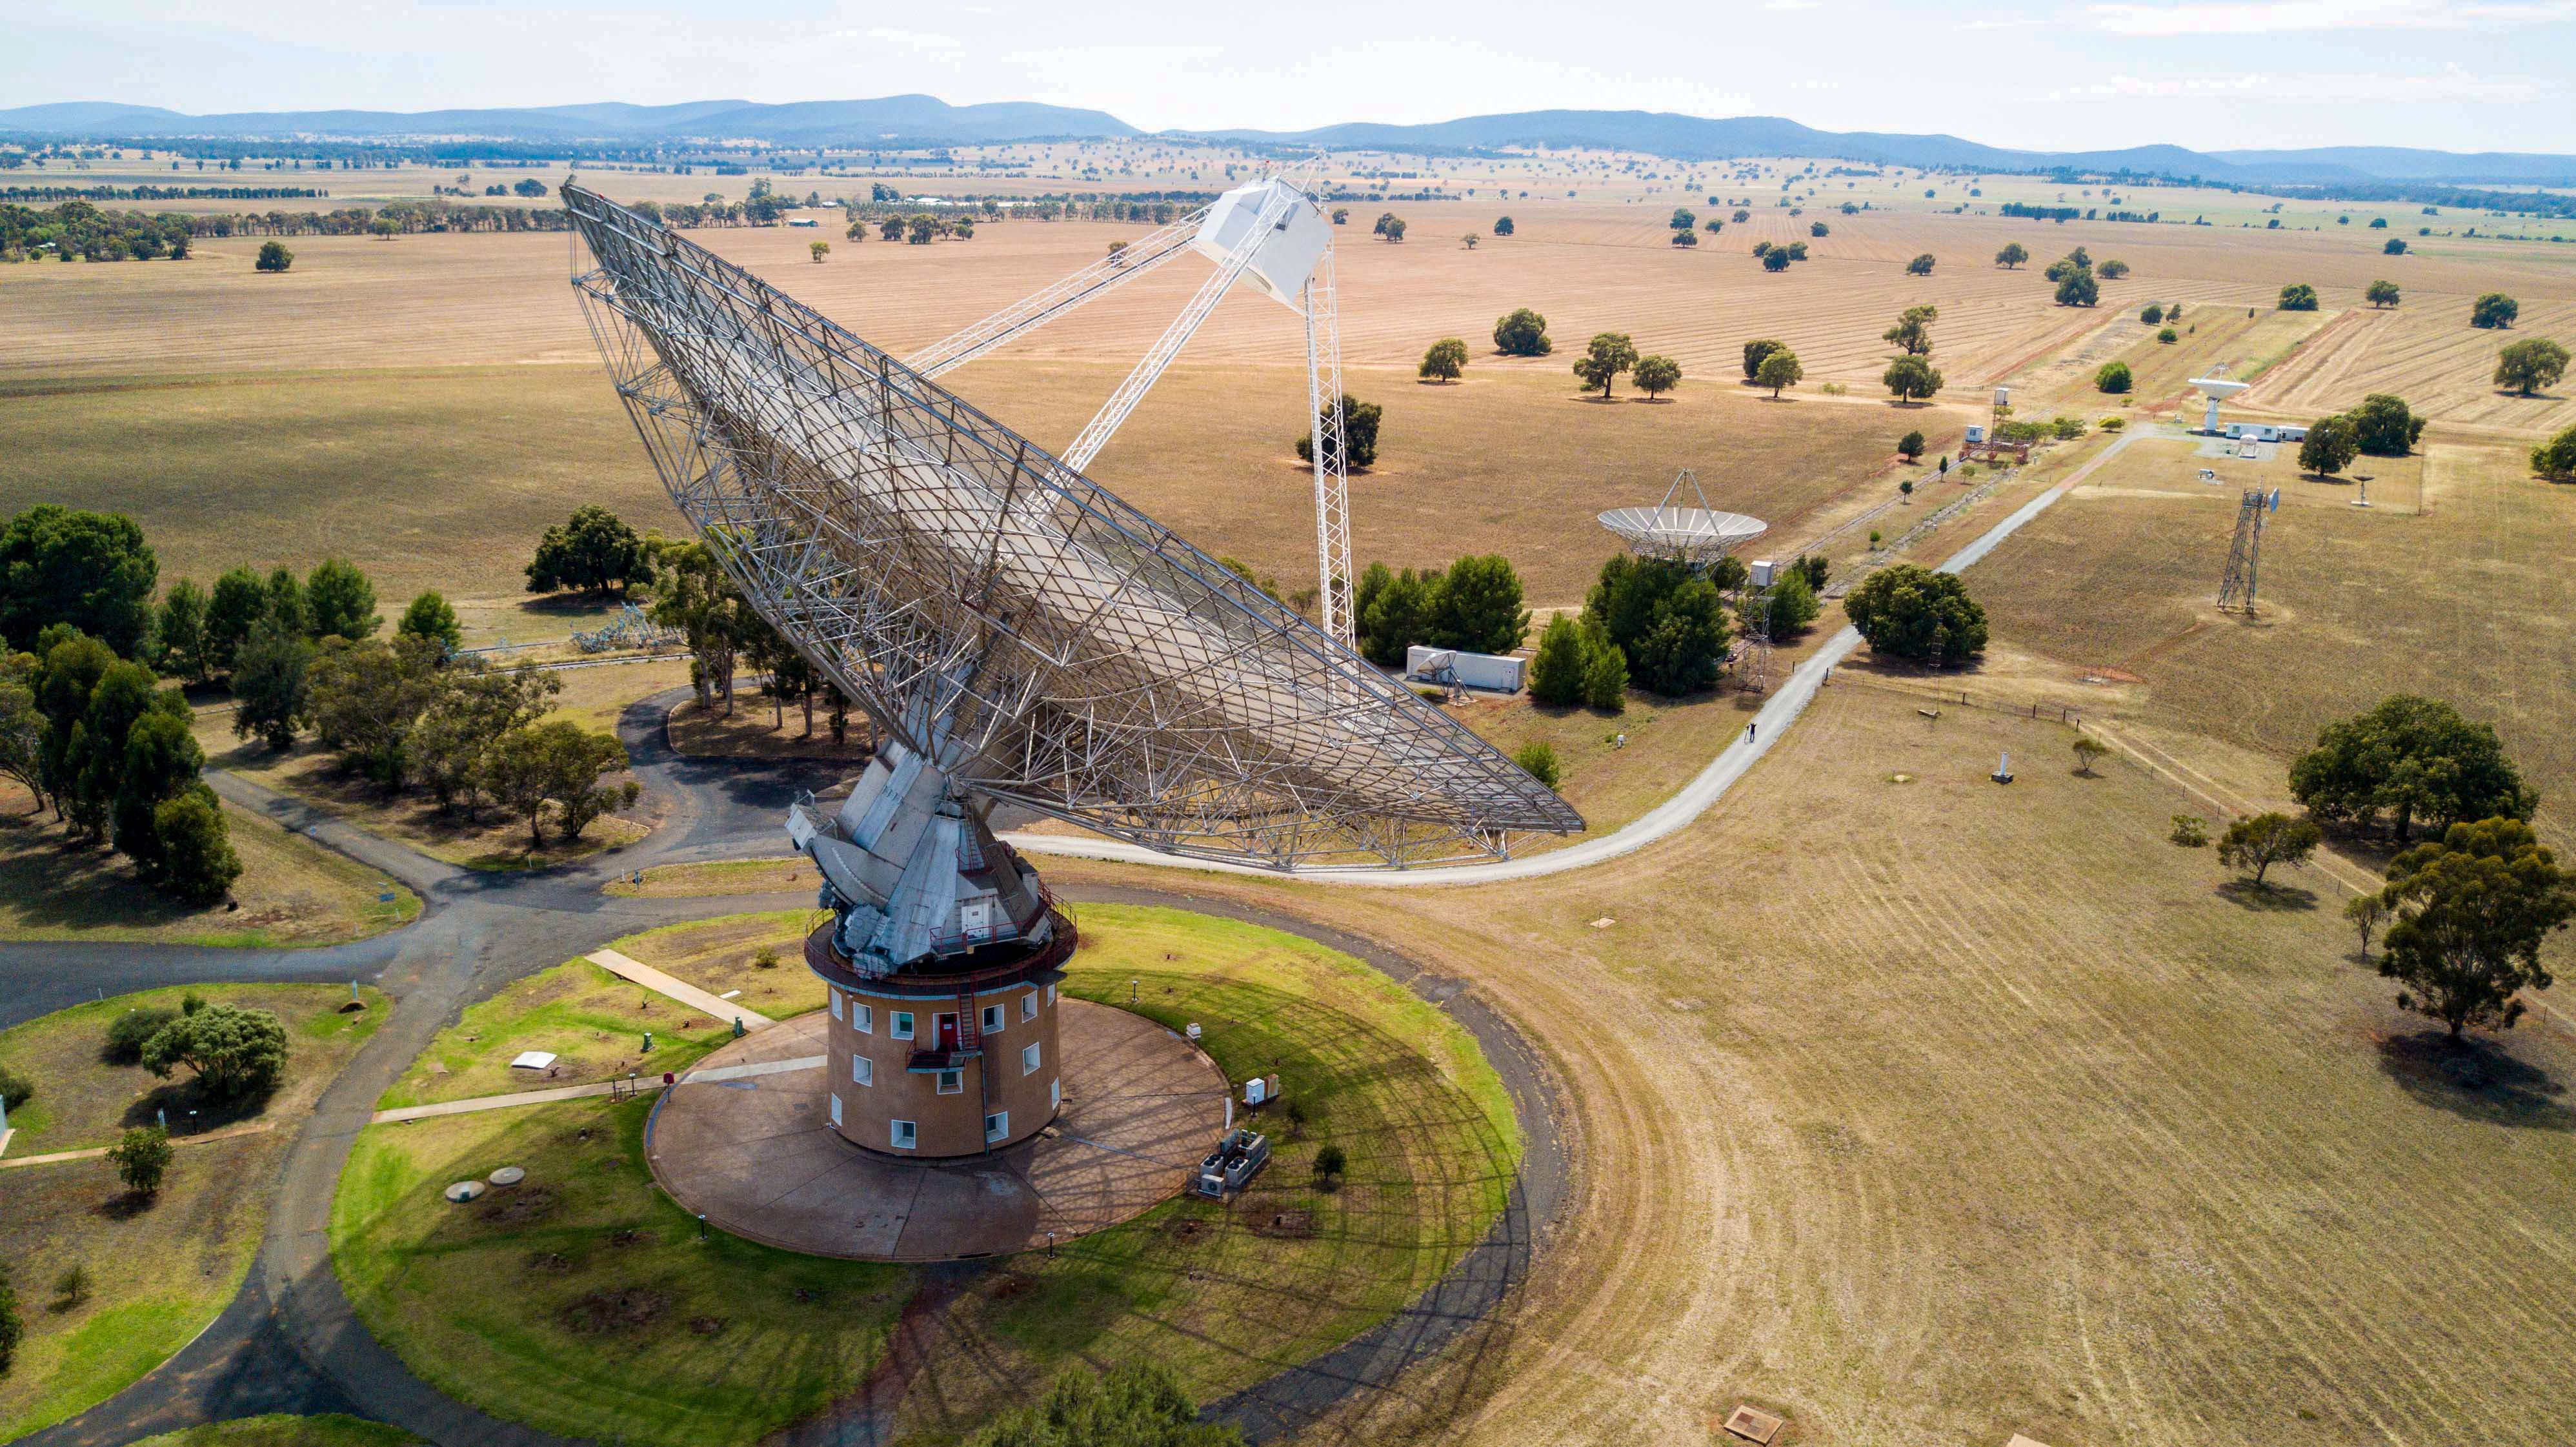 Aerial shot of the Parkes radio telescope, set against golden grassy planes with the telescope raised.